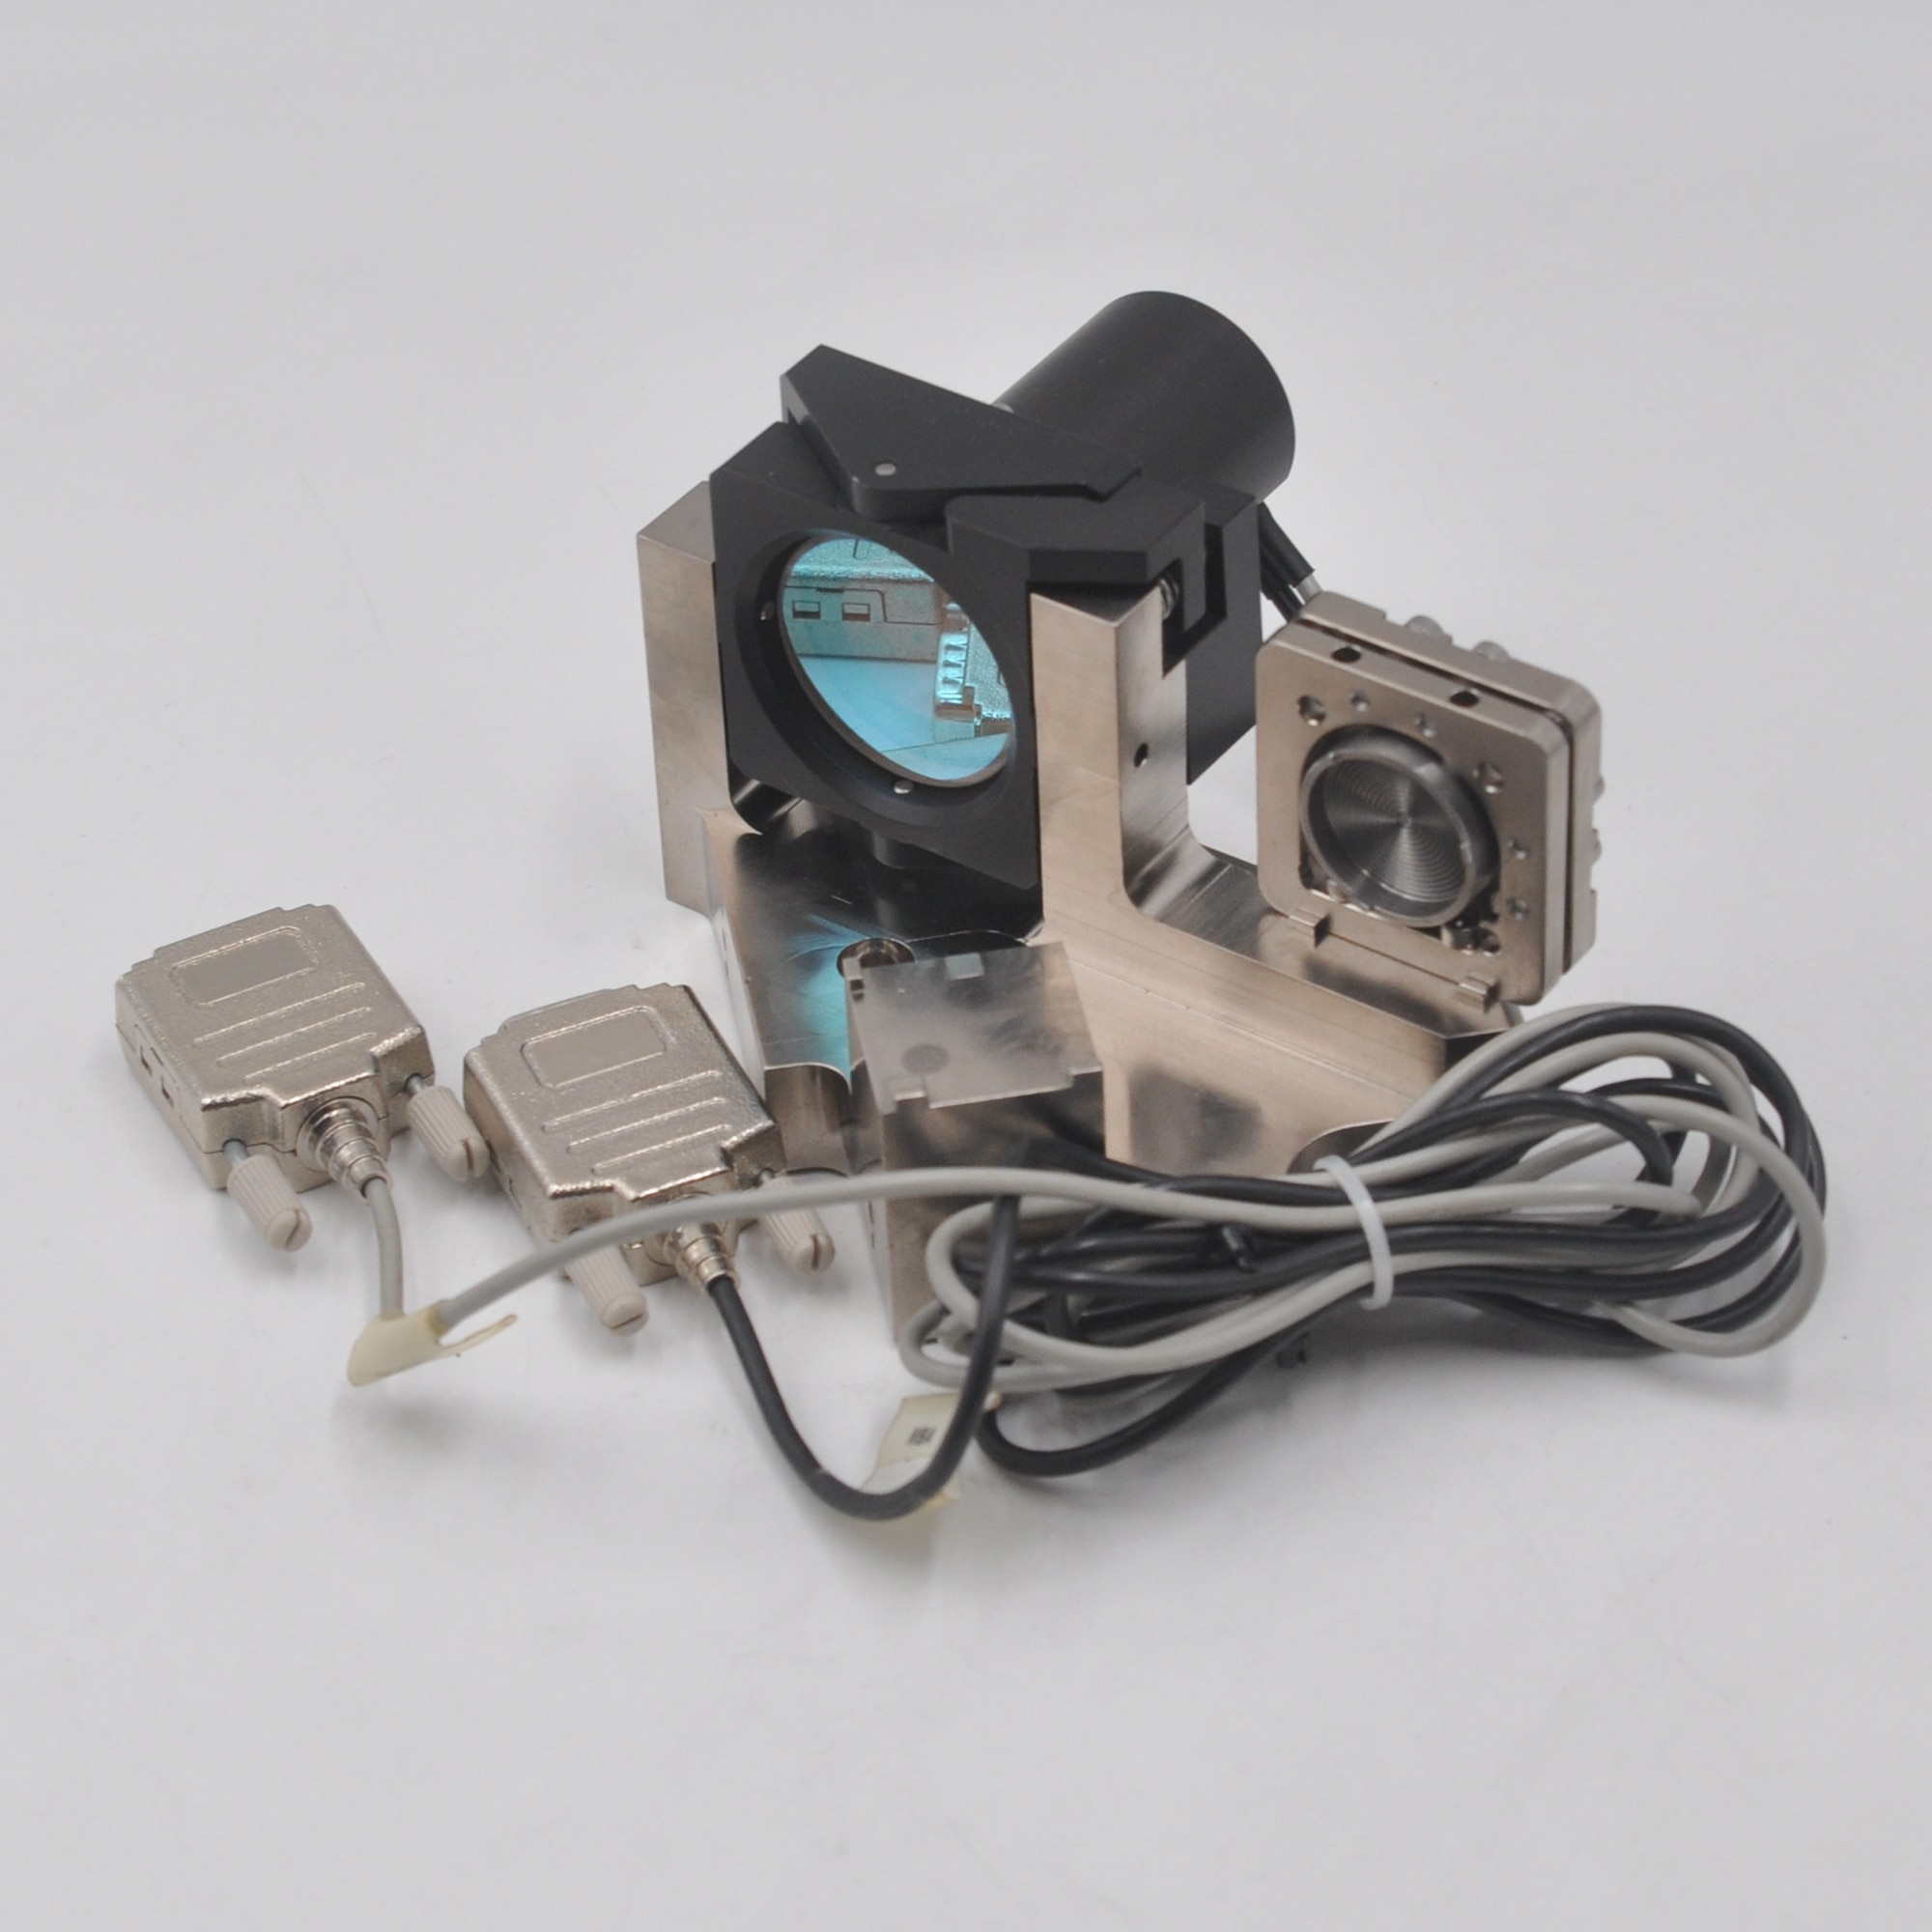 Disassembly machine for optics 164855 REV.A electric optical mirror surface color new packaged